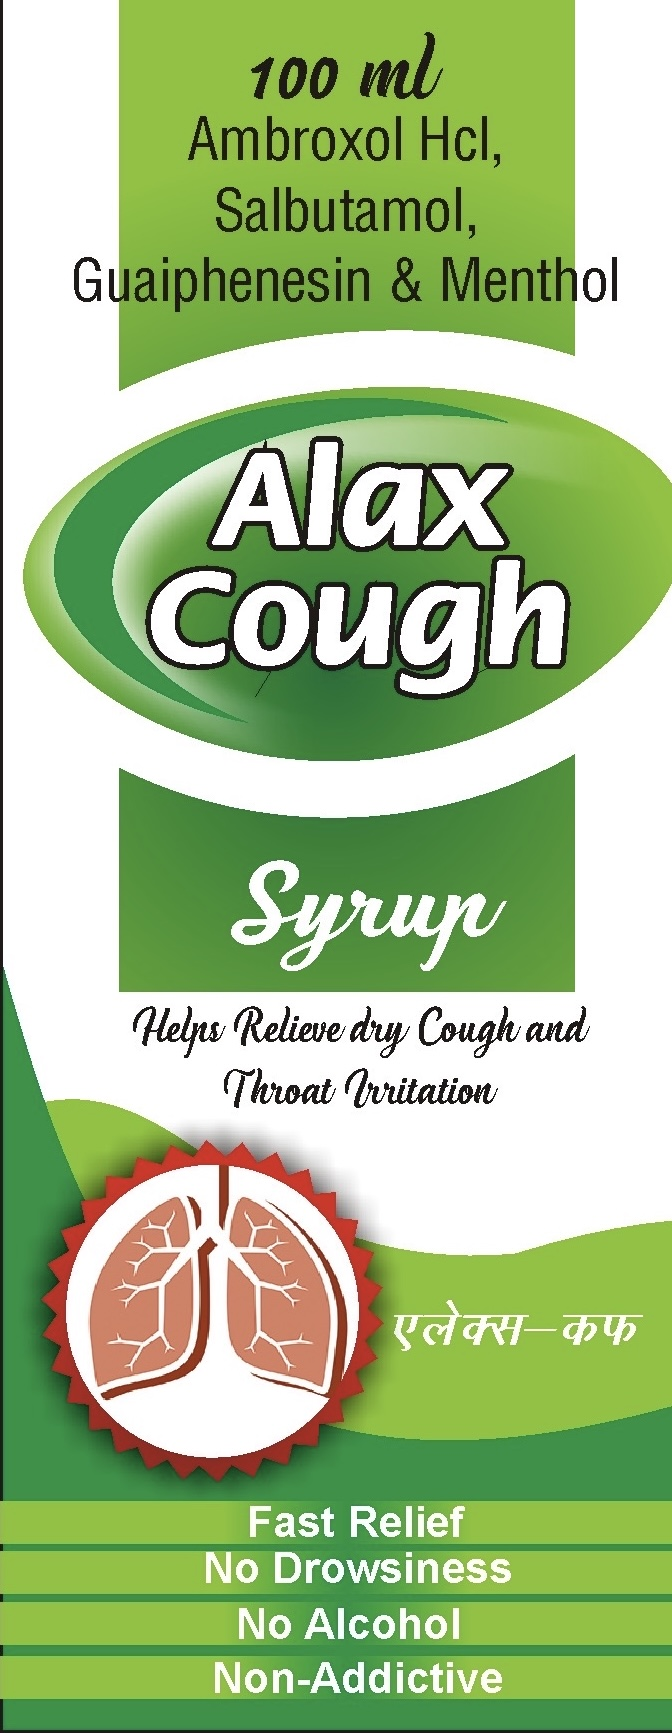 ALAX COUGH SYRUP 100ML